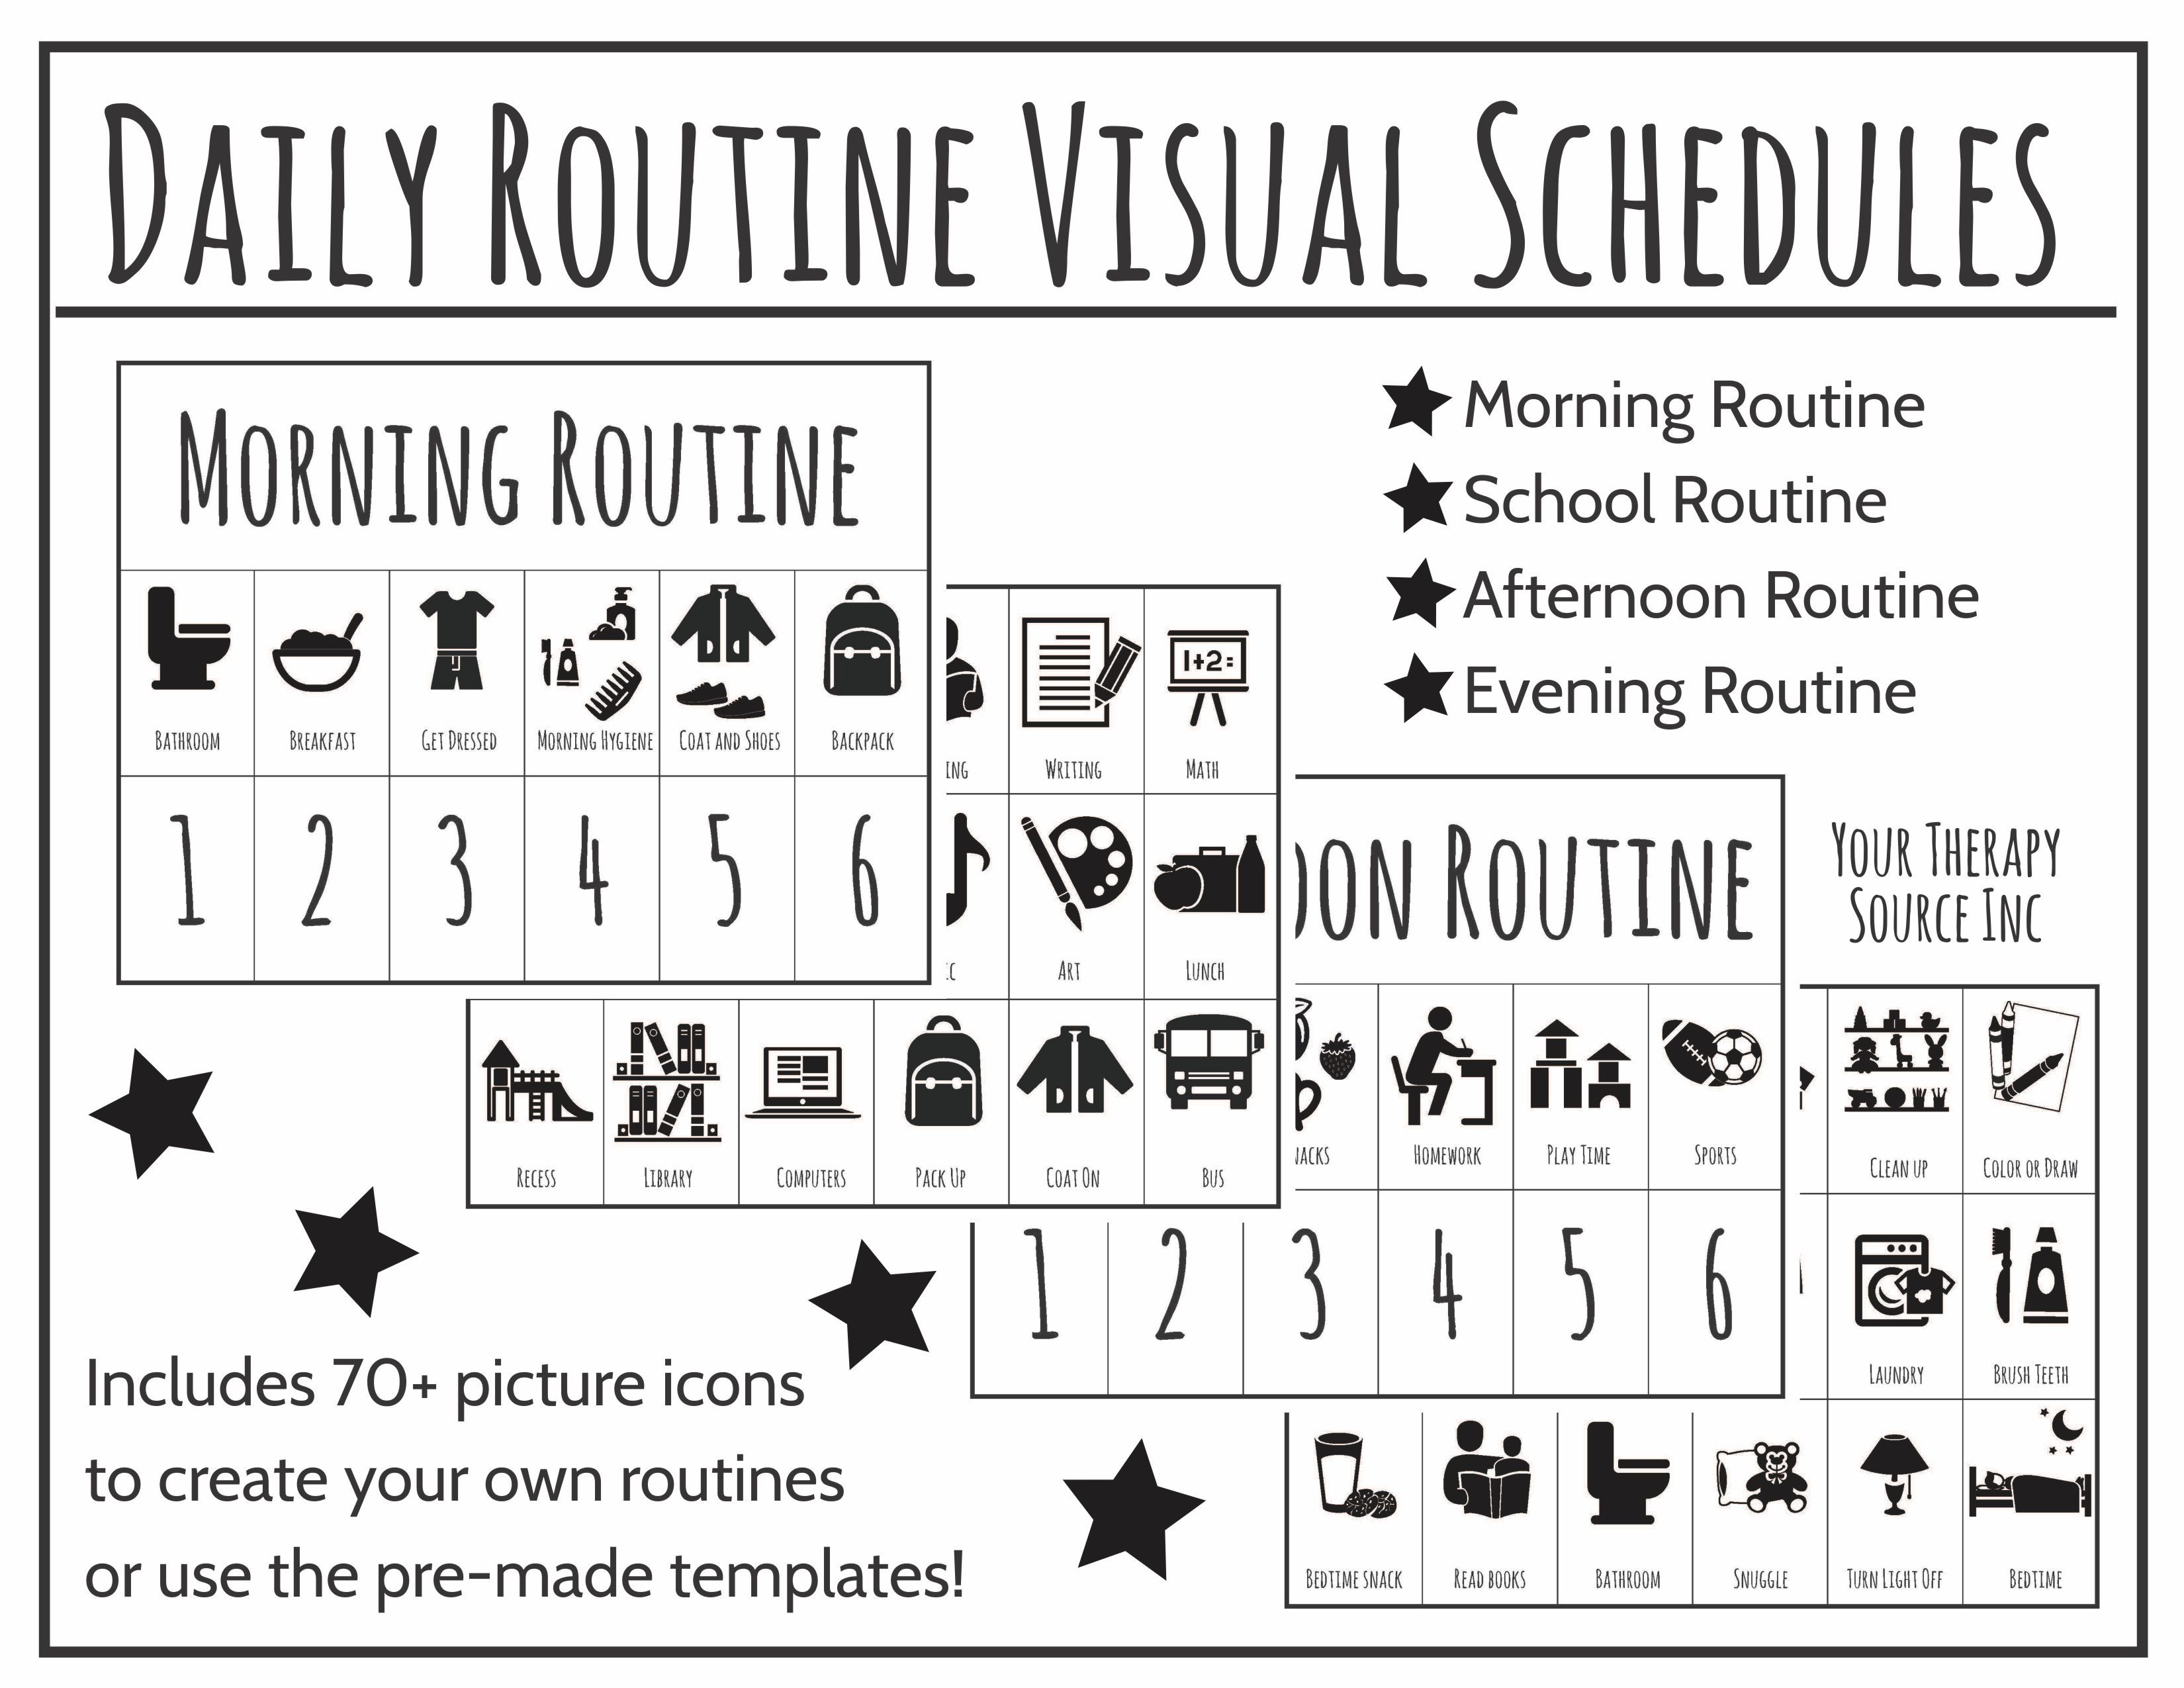 Daily Routine Visual Schedules Digital Download Includes